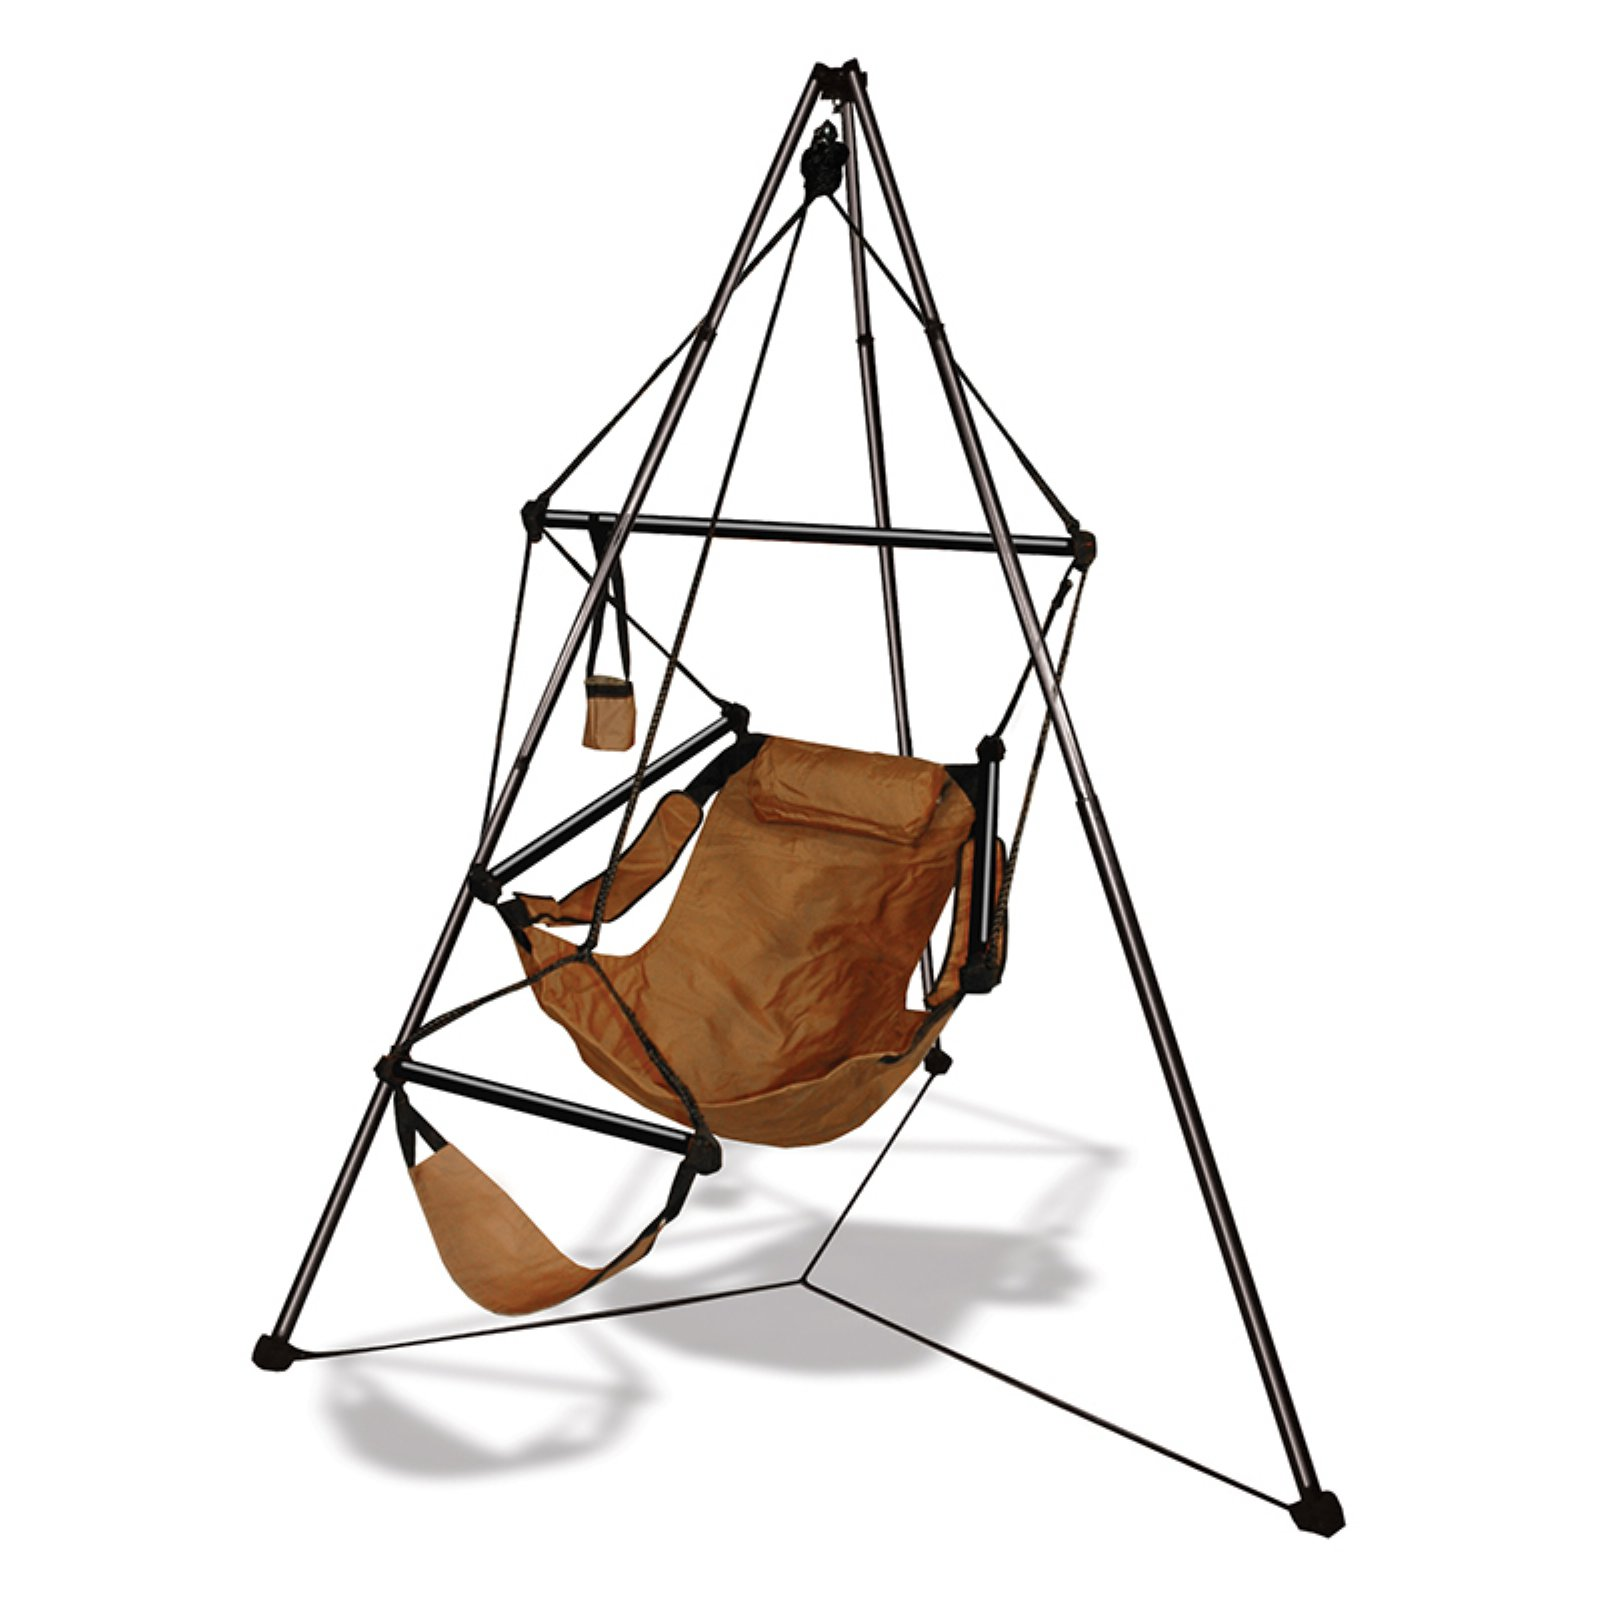 Hammaka Tripod Stand with Hanging Air Chair